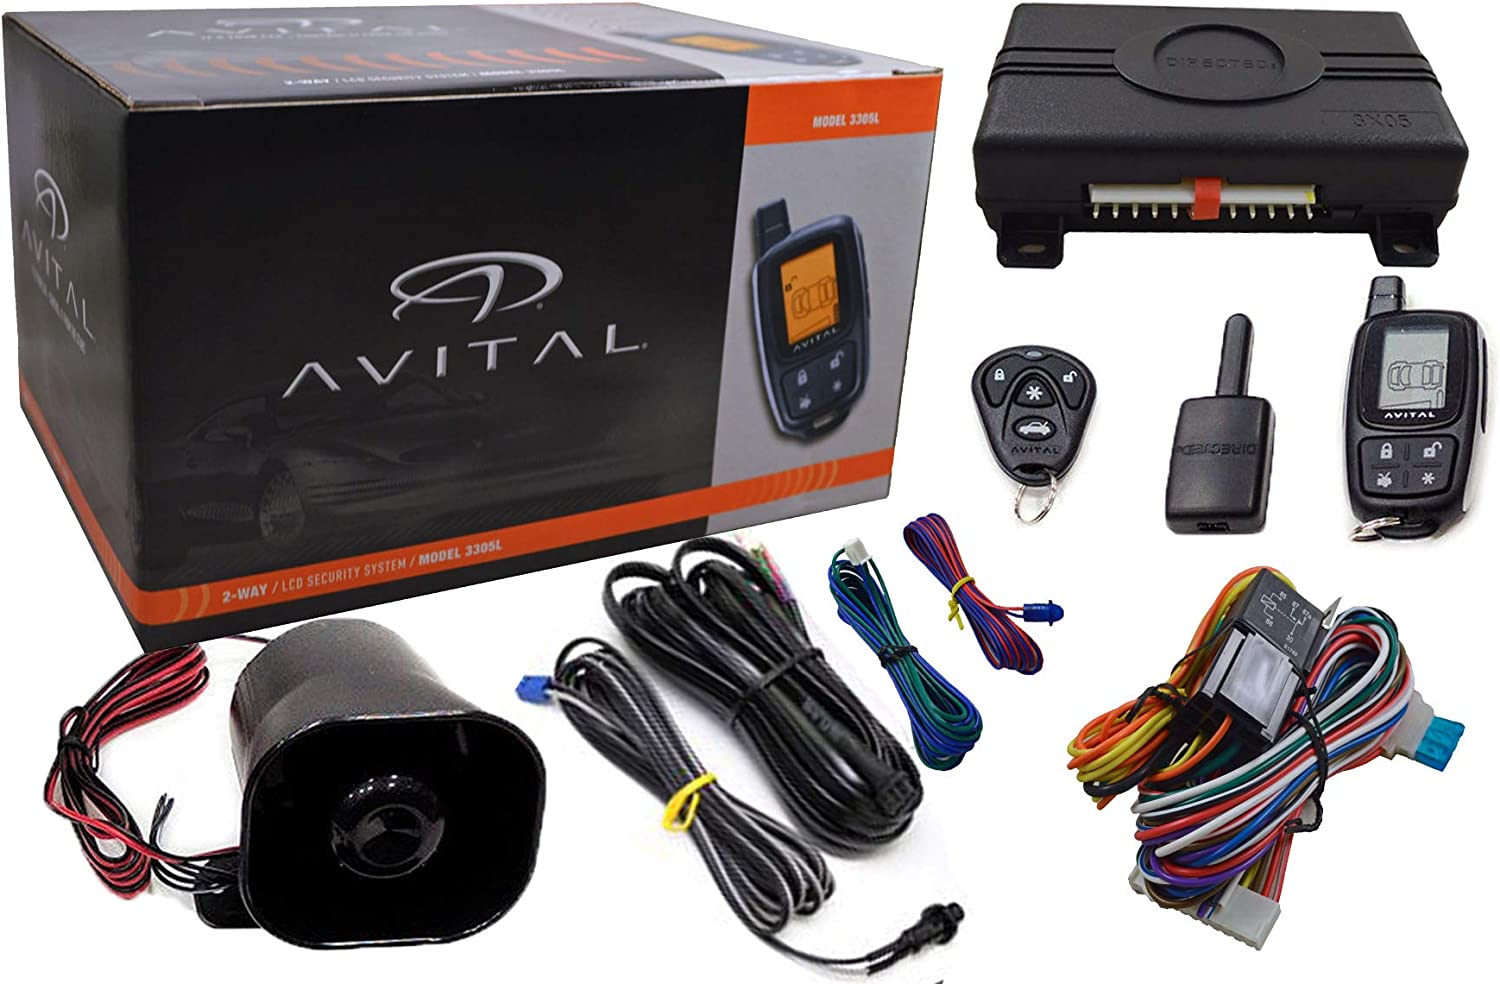 Avital 3305L 2-Way Lcd Security System Keyless Entry//Vehicle Security System